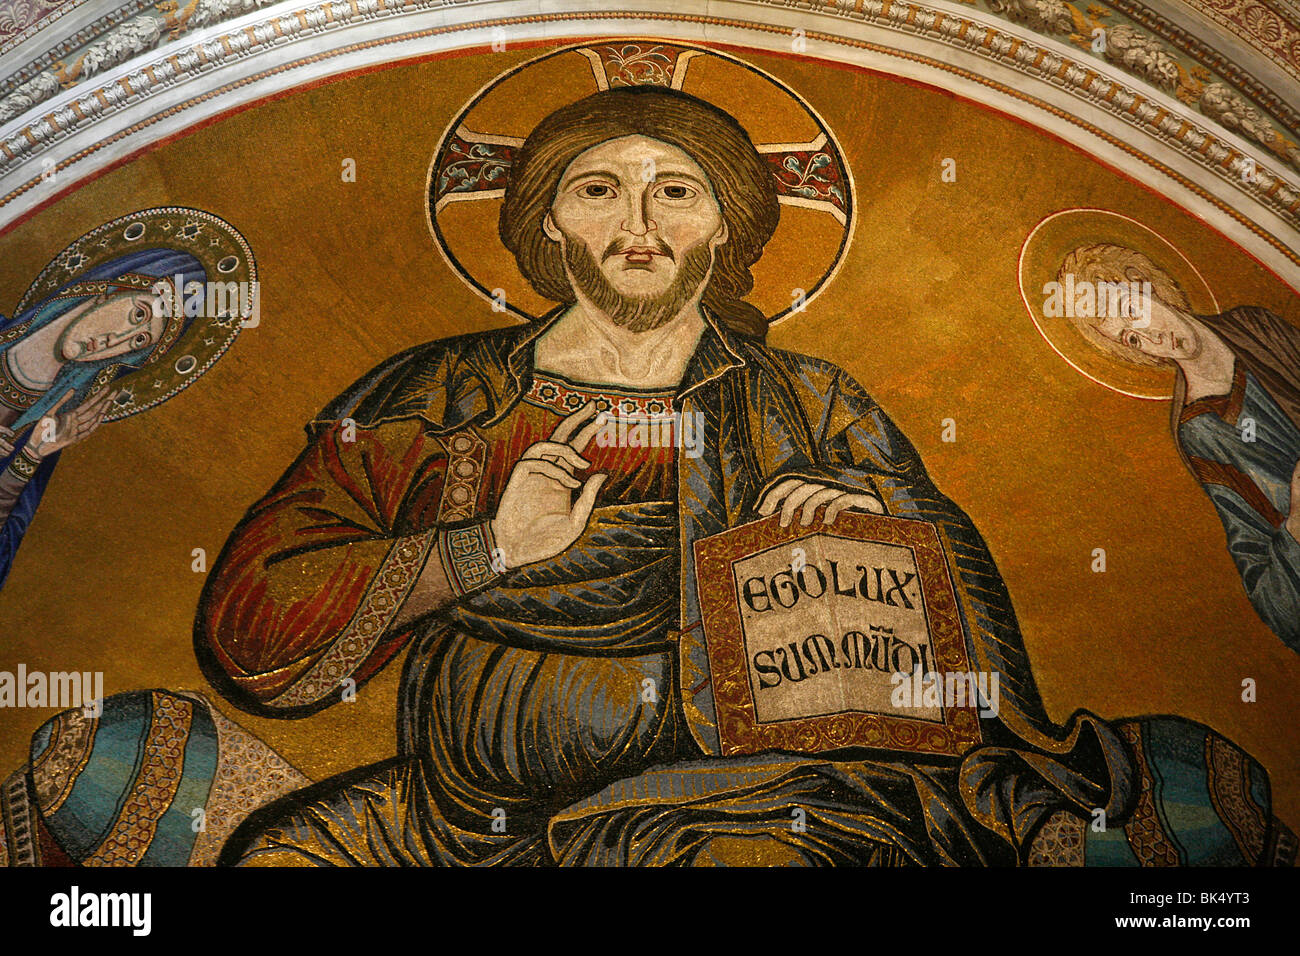 Christ in Majesty, Duomo of Pisa, Pisa, Tuscany, Italy, Europe - Stock Image